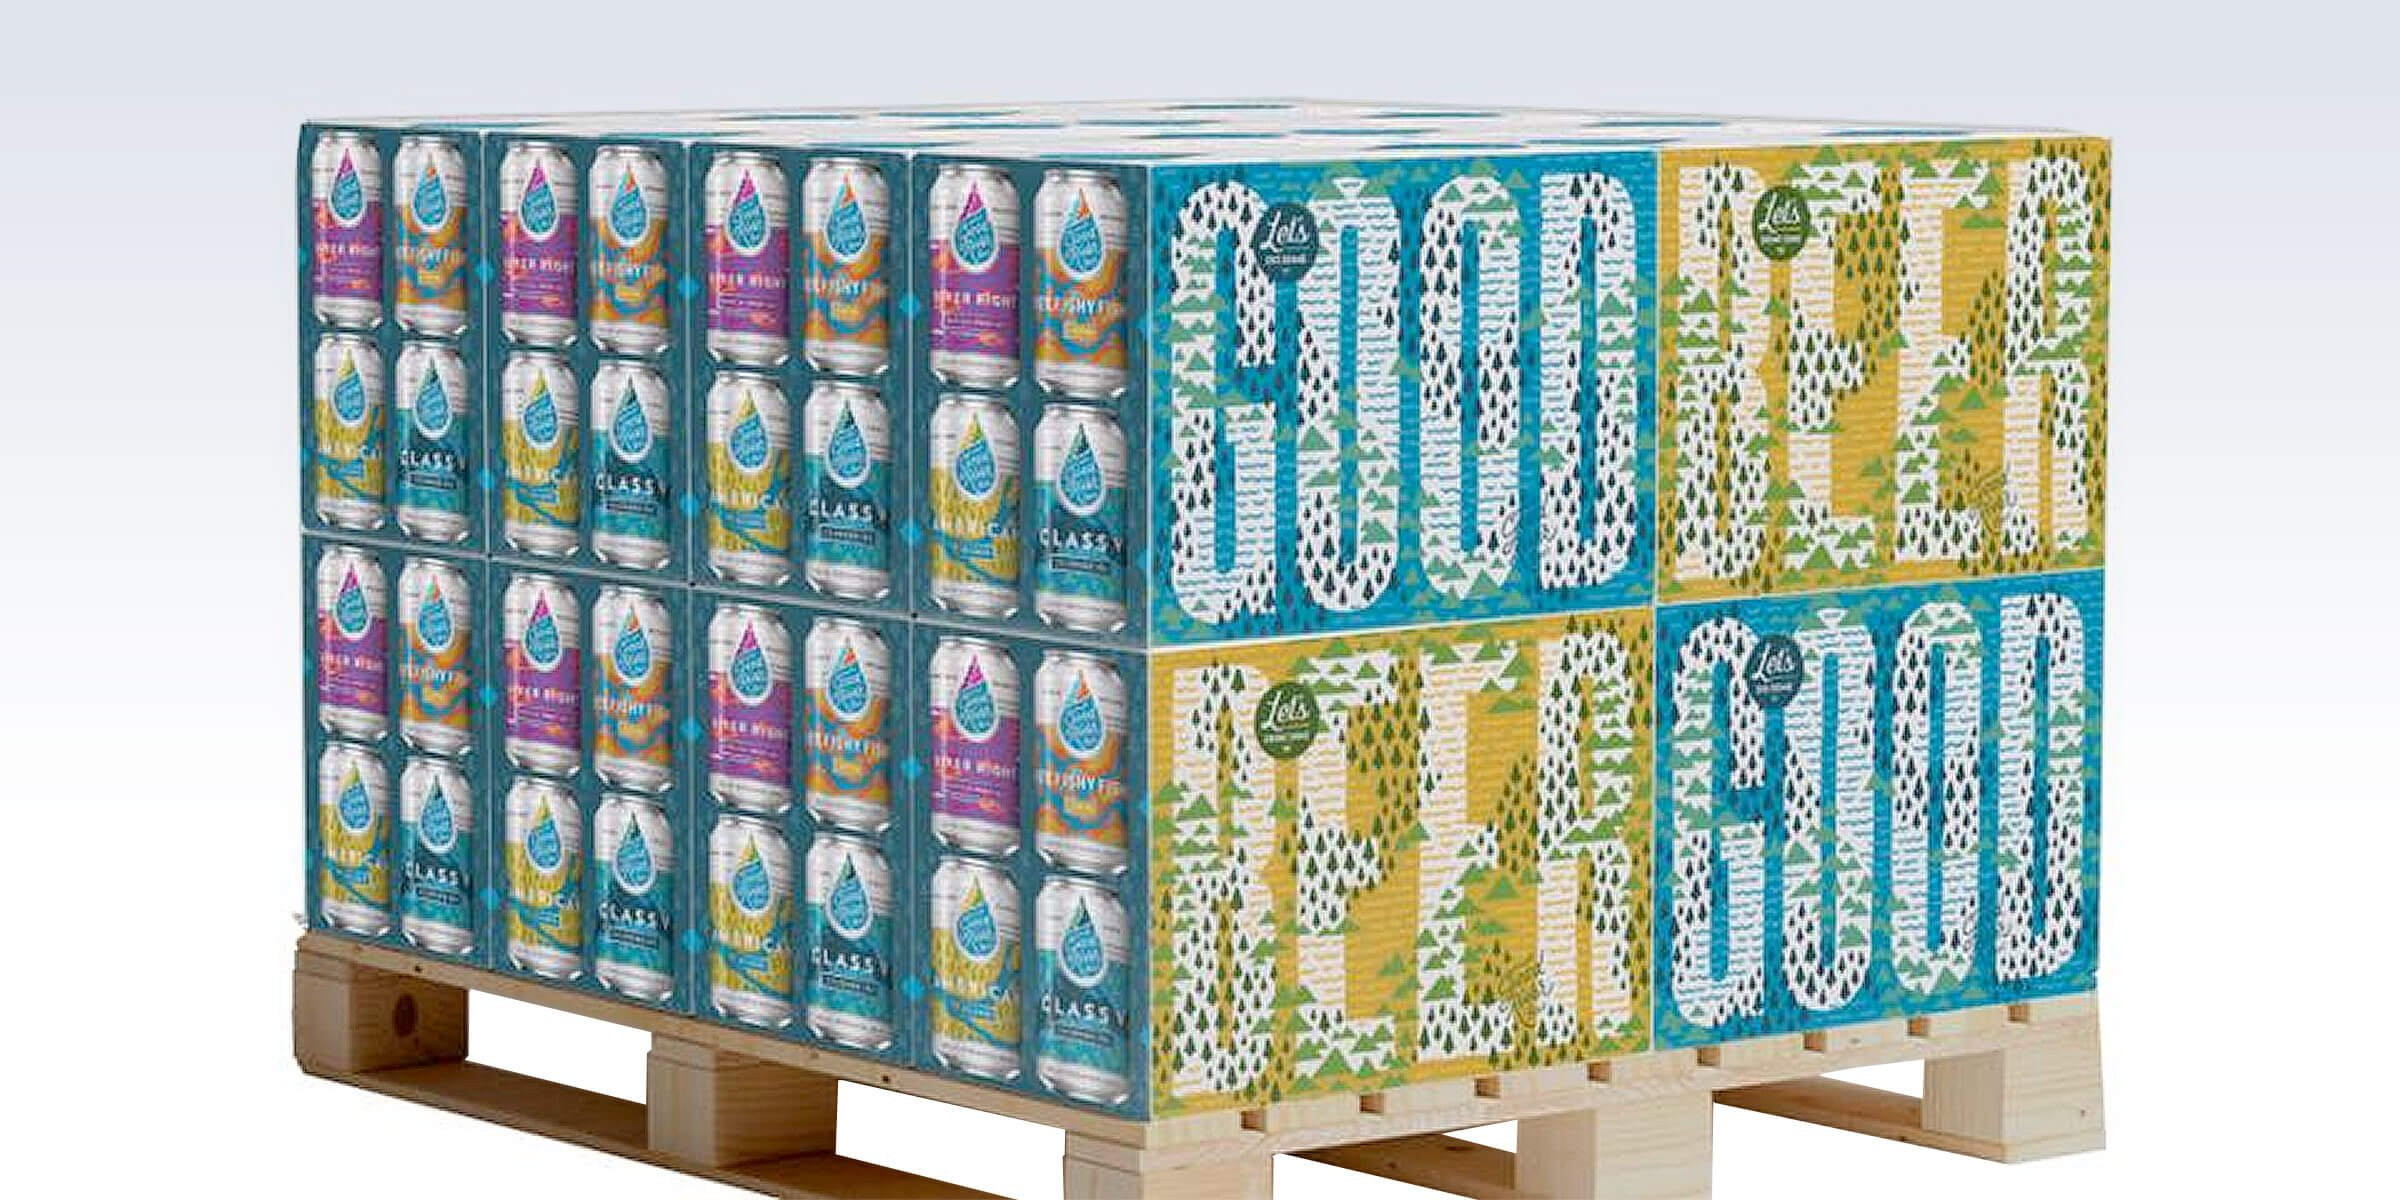 Denver-based Good River Beer Company has released its first variety pack featuring a collection of four beers and is available on store shelves now.